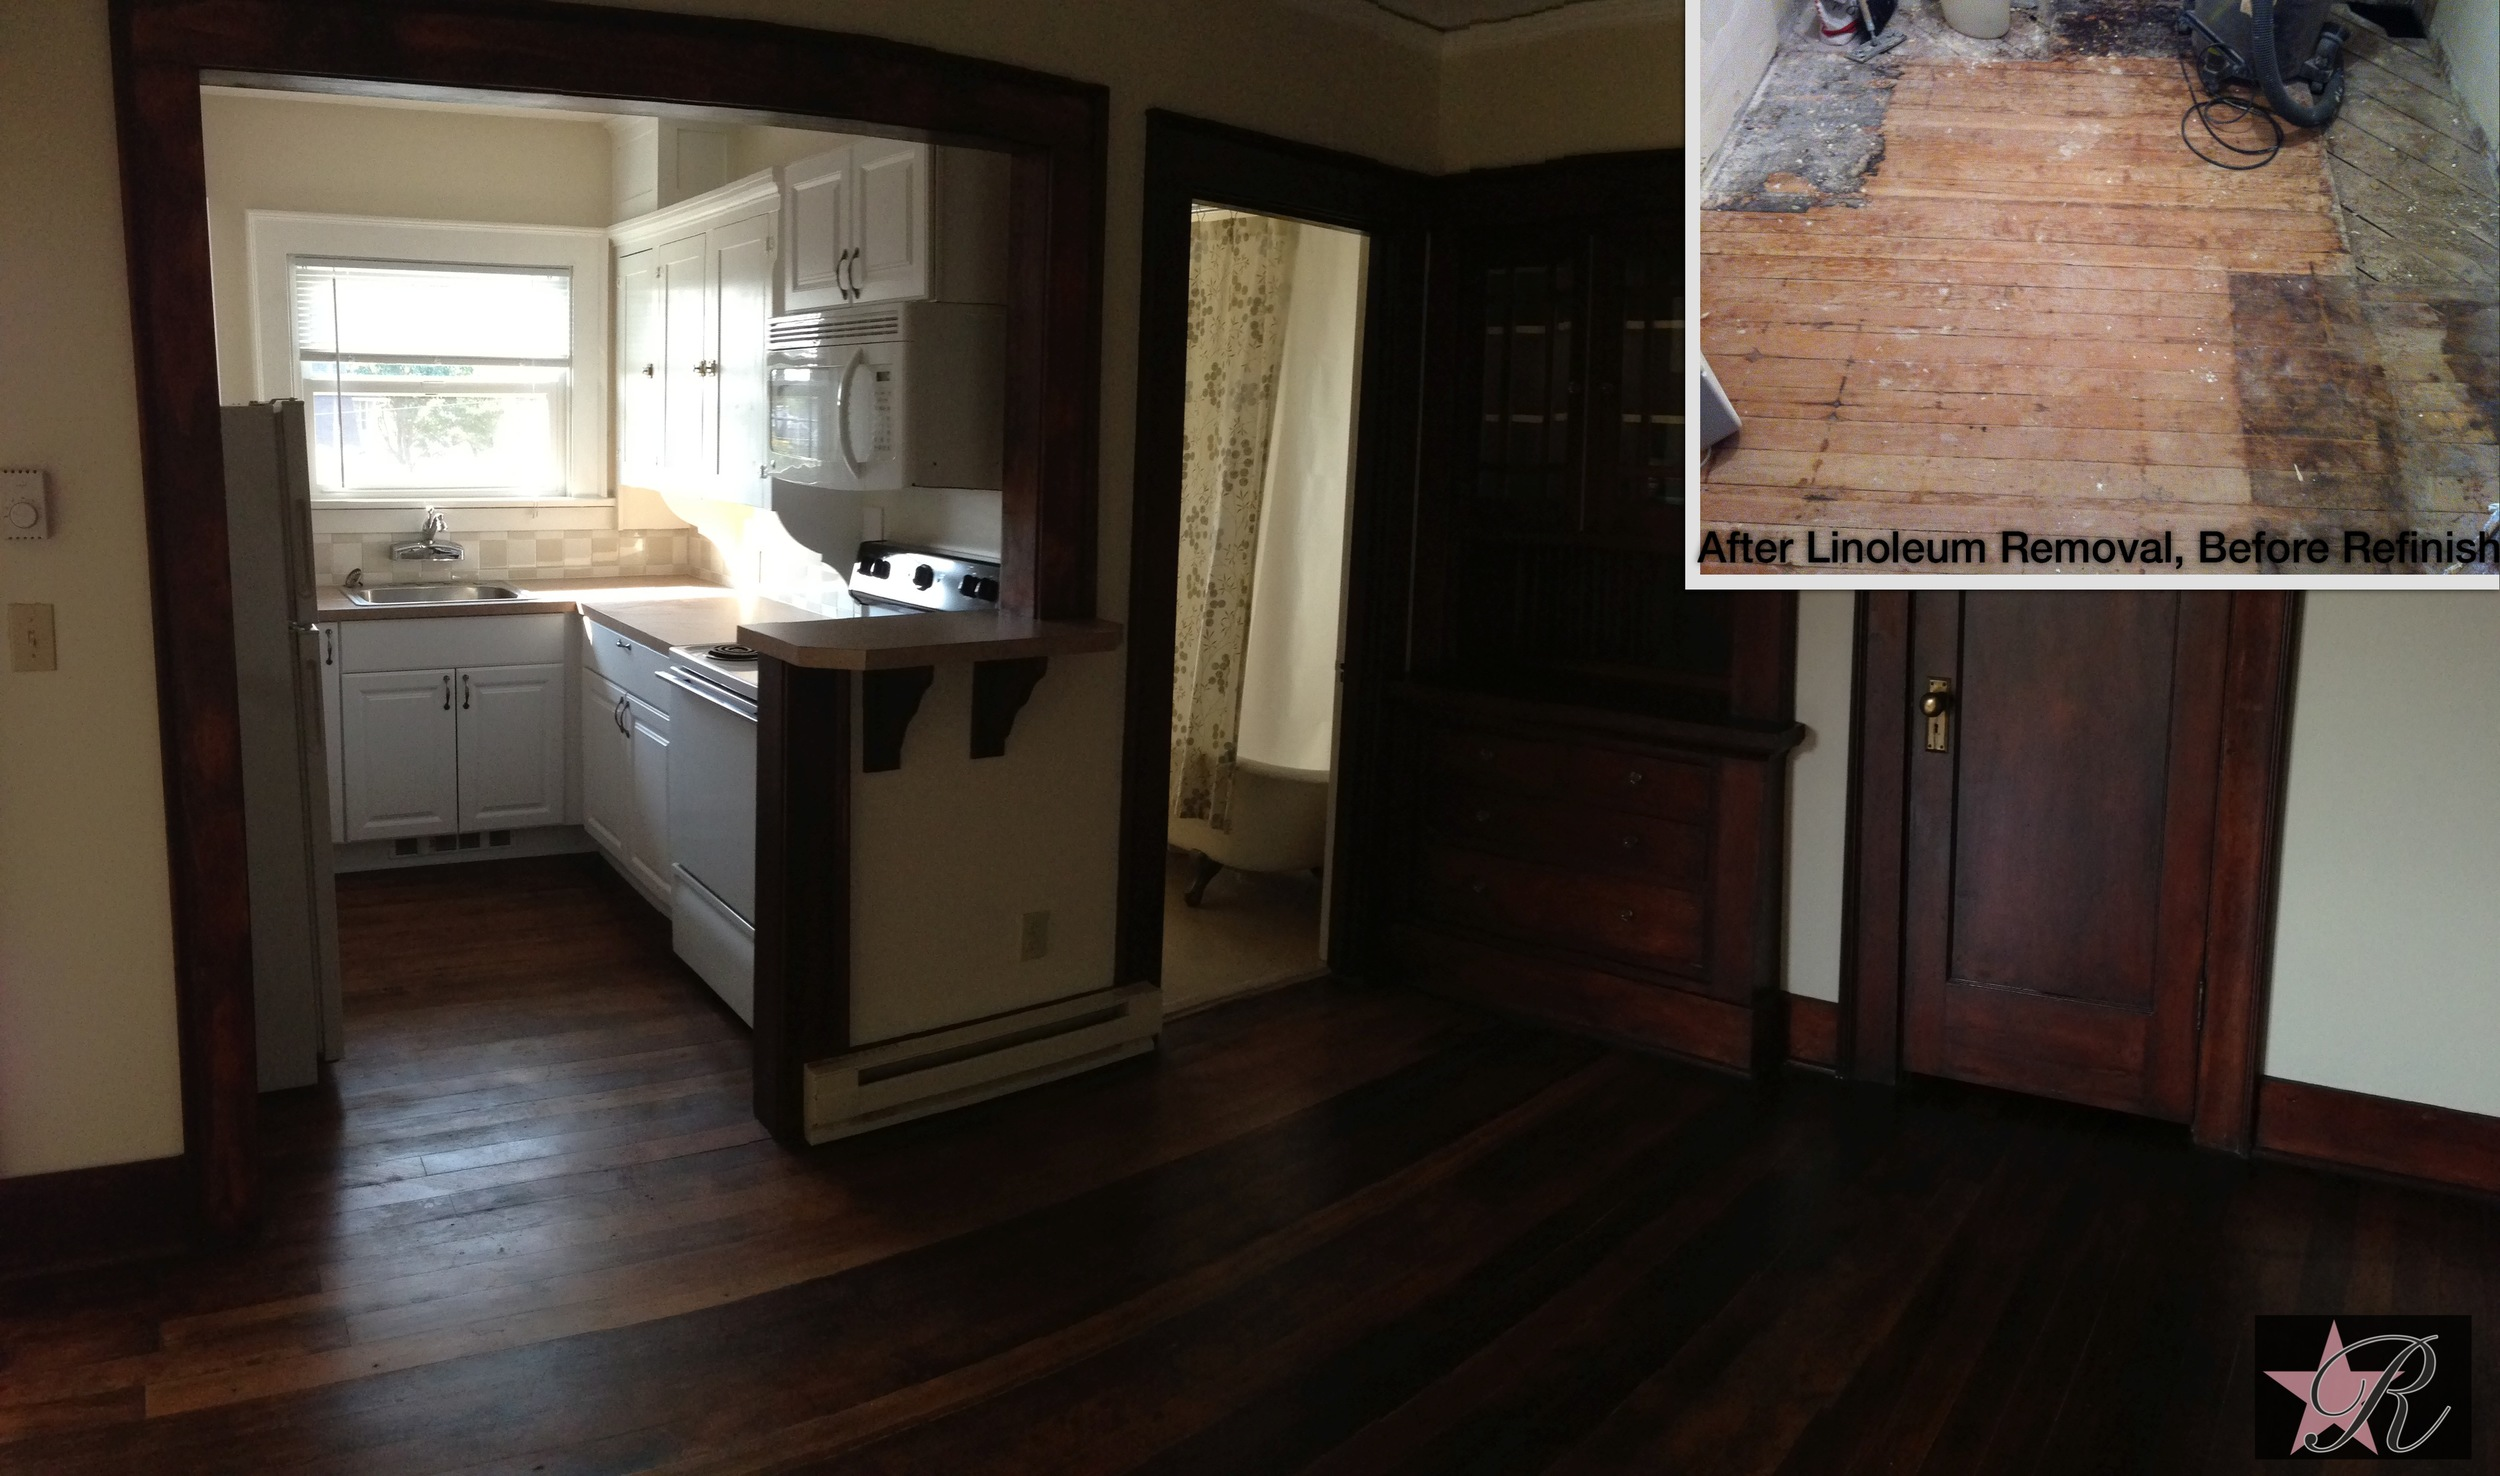 In addition to refinishing the wood trim and floor, Rockstar Remodel painted this apartment, installed new kitchen cabinets, backsplash and bar.